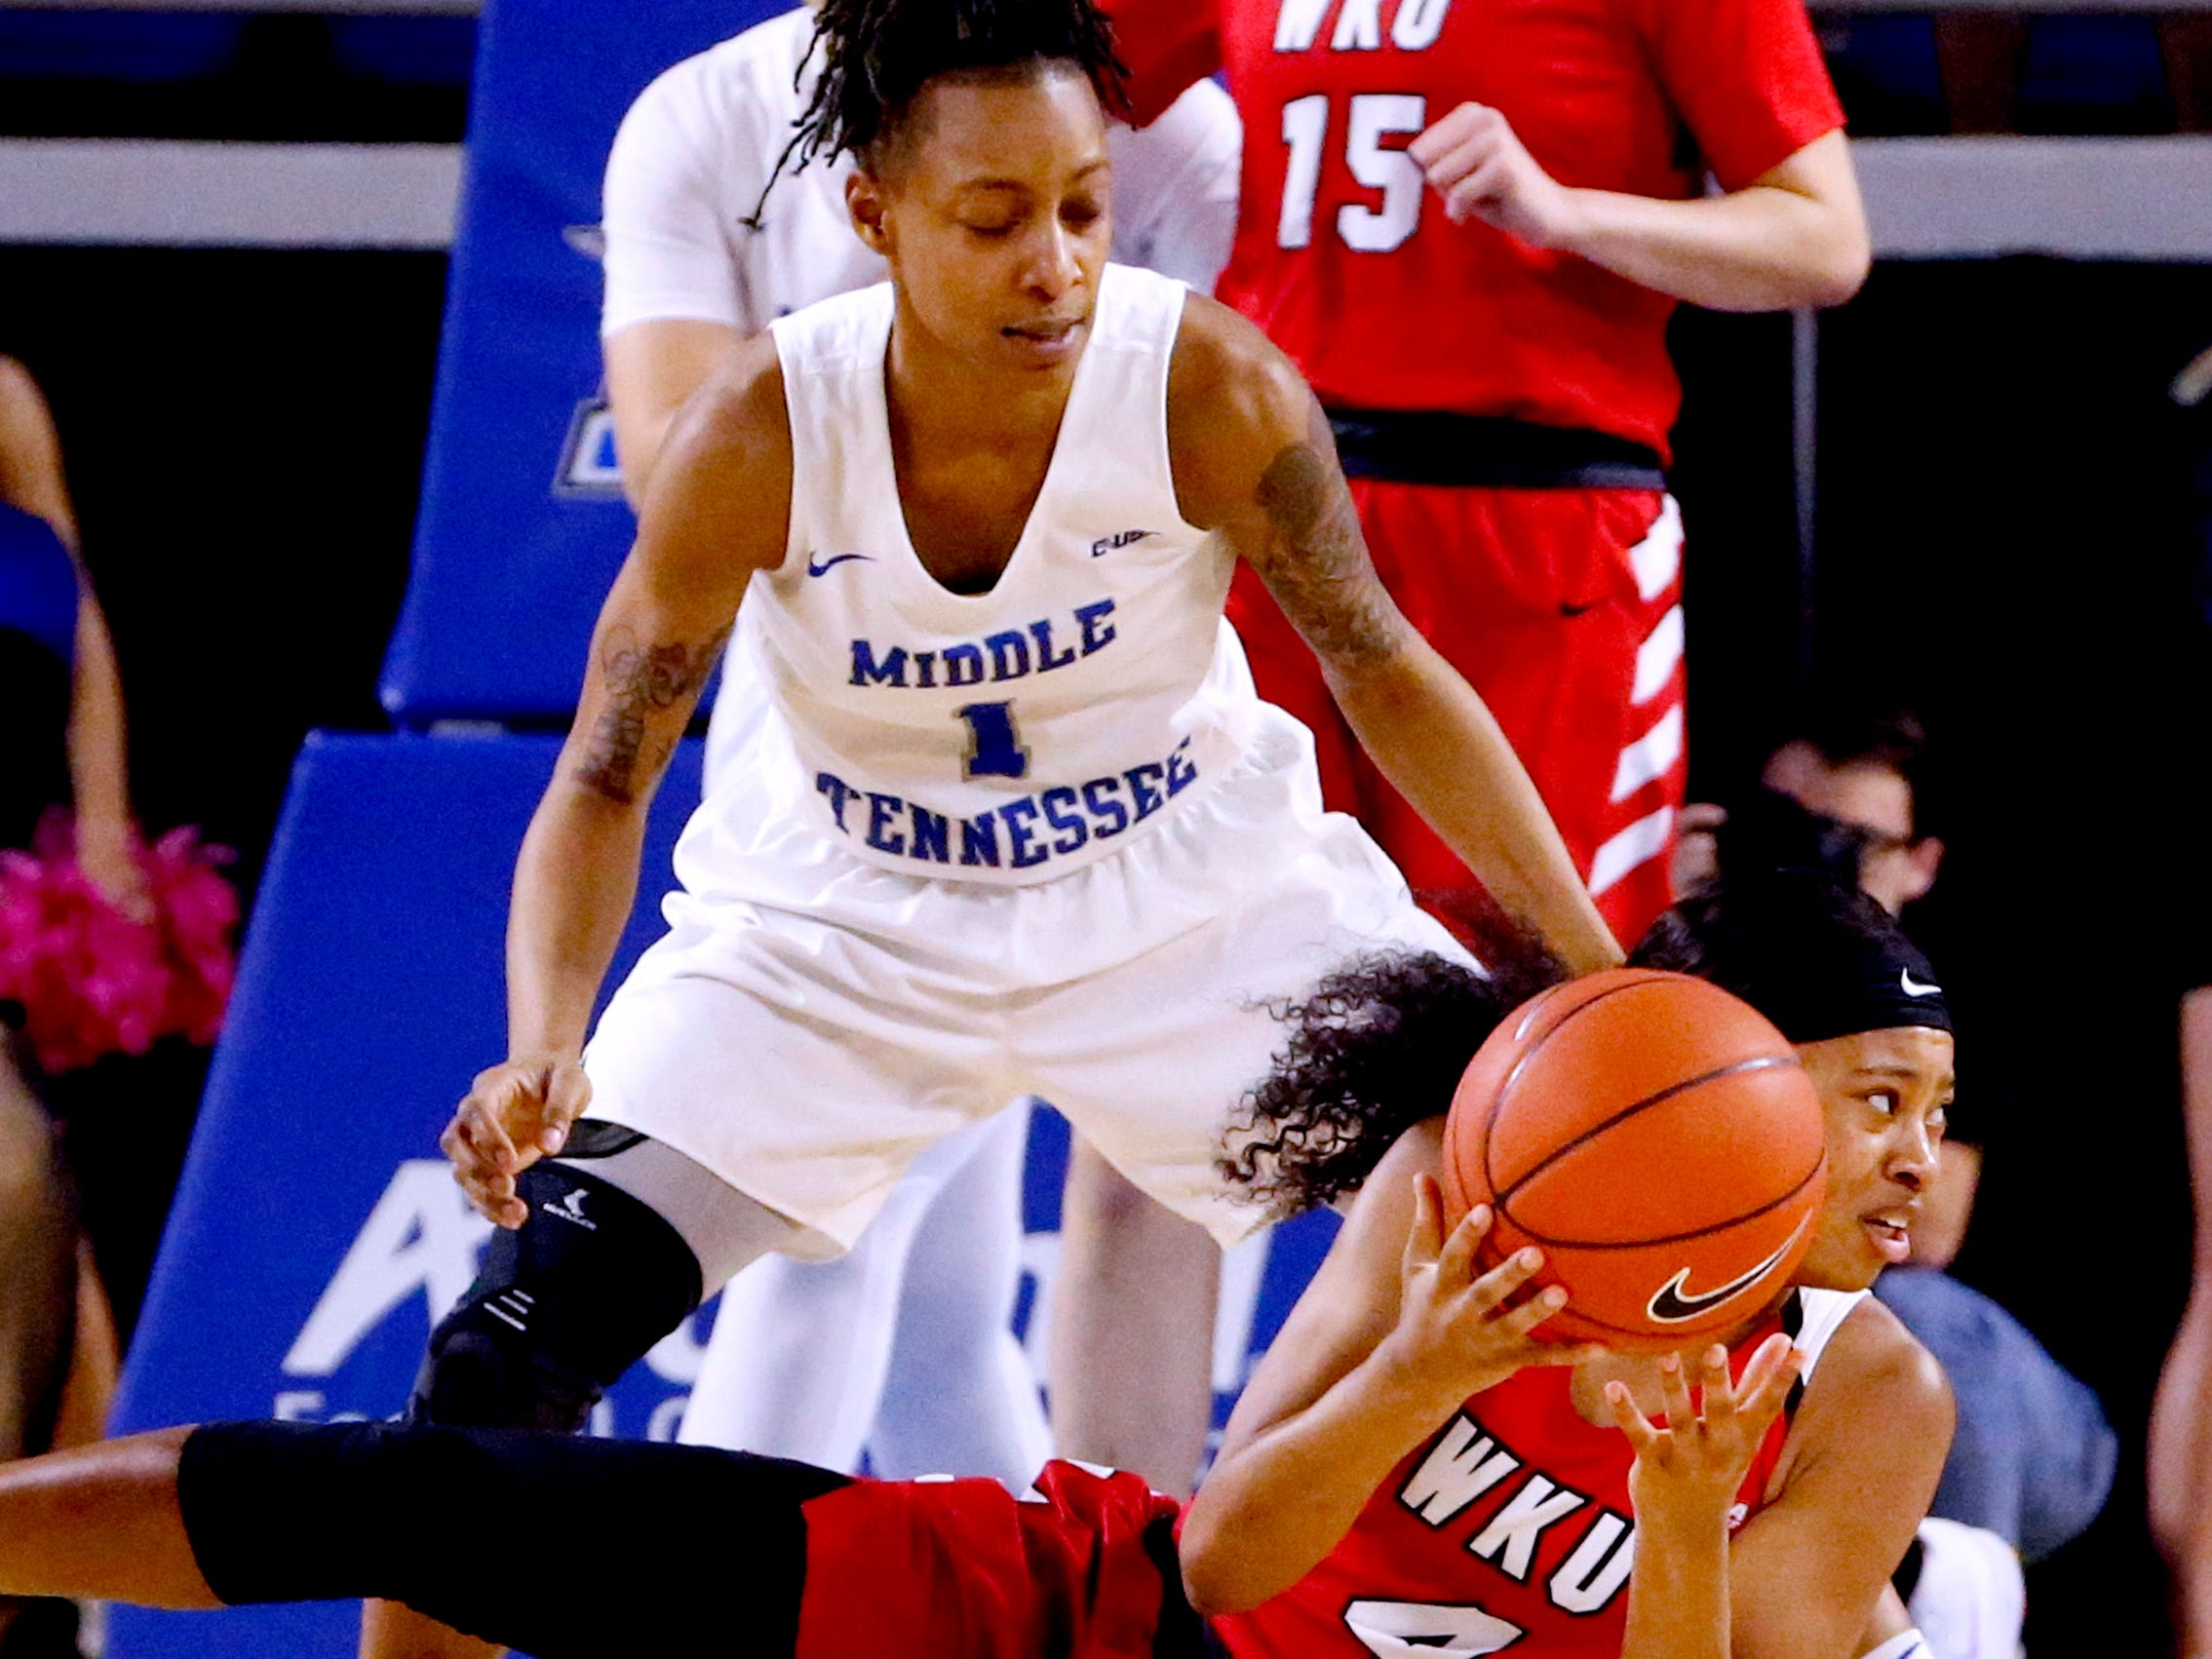 Western's forward Dee Givens (4) galls to the floor with the ball as MTSU's guard A'Queen Hayes (1) guards her on Thursday, Feb. 14, 2019.